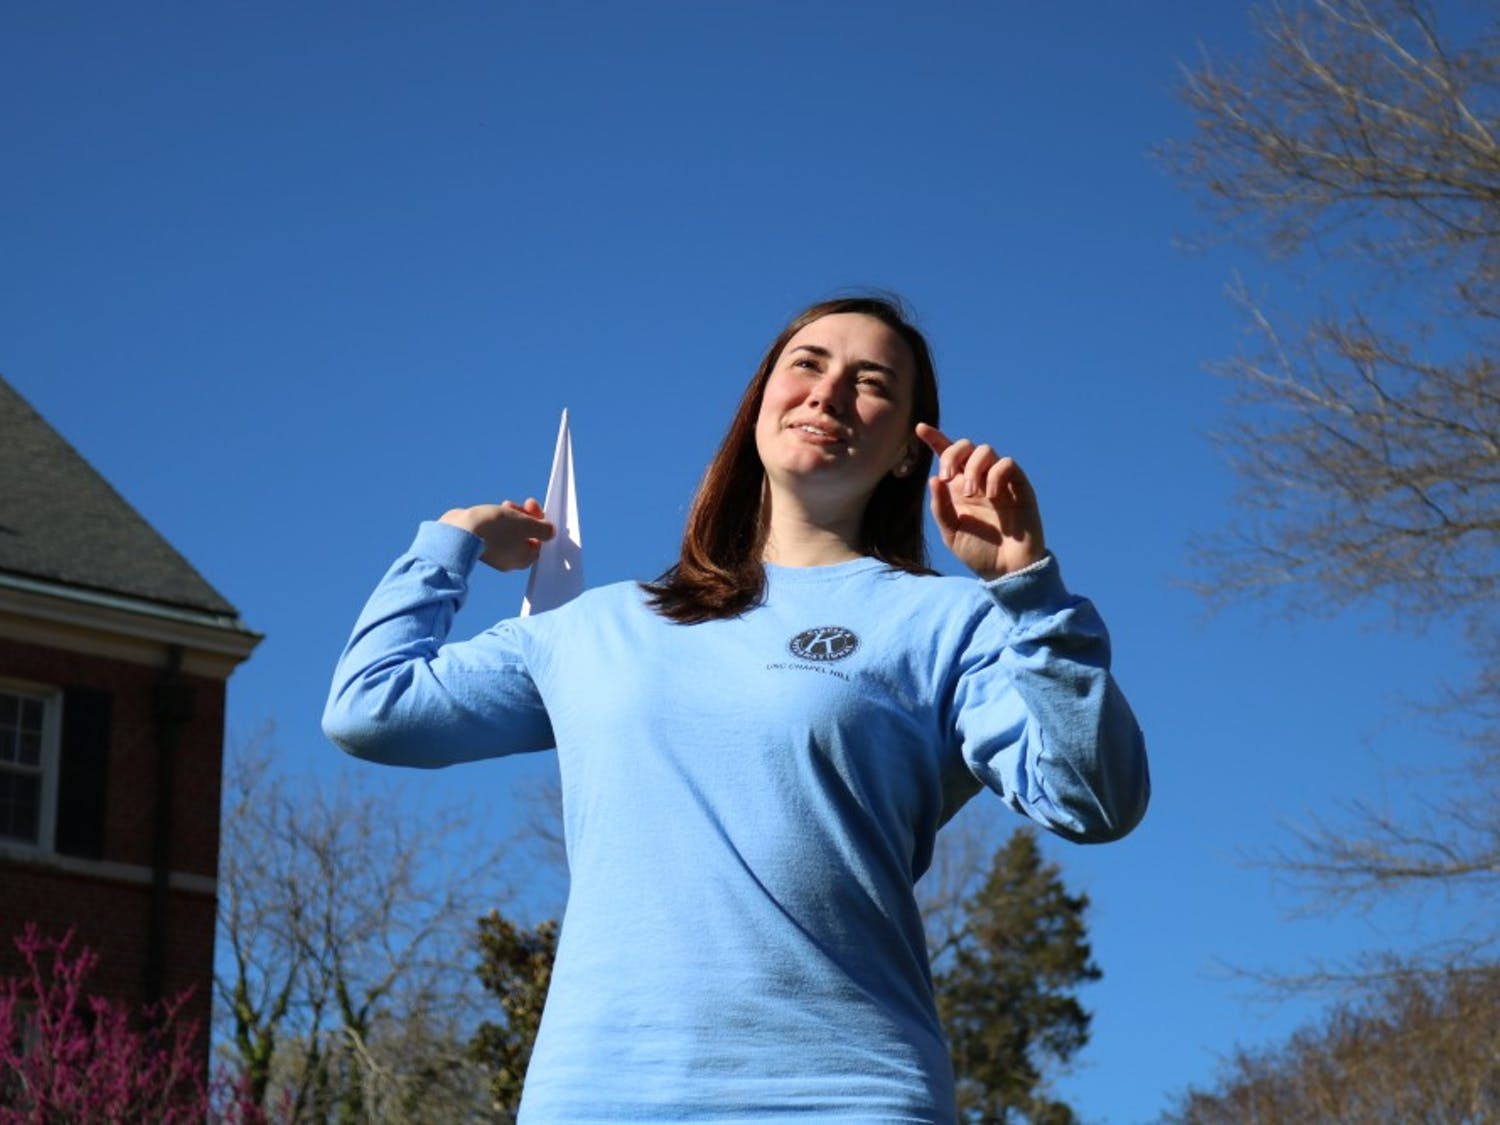 Sophomore Sara Lafontaine throws a paper airplane on Tuesday, March 26, 2019. The Residence Hall Association is hosting The Big Paper Airplane Tournament on Saturday, March 30, 2019 at 2 PM at the Connor Quad. The event is designed to raise awareness about sustainable practices. Free food and giveaways will be available to those who attend.